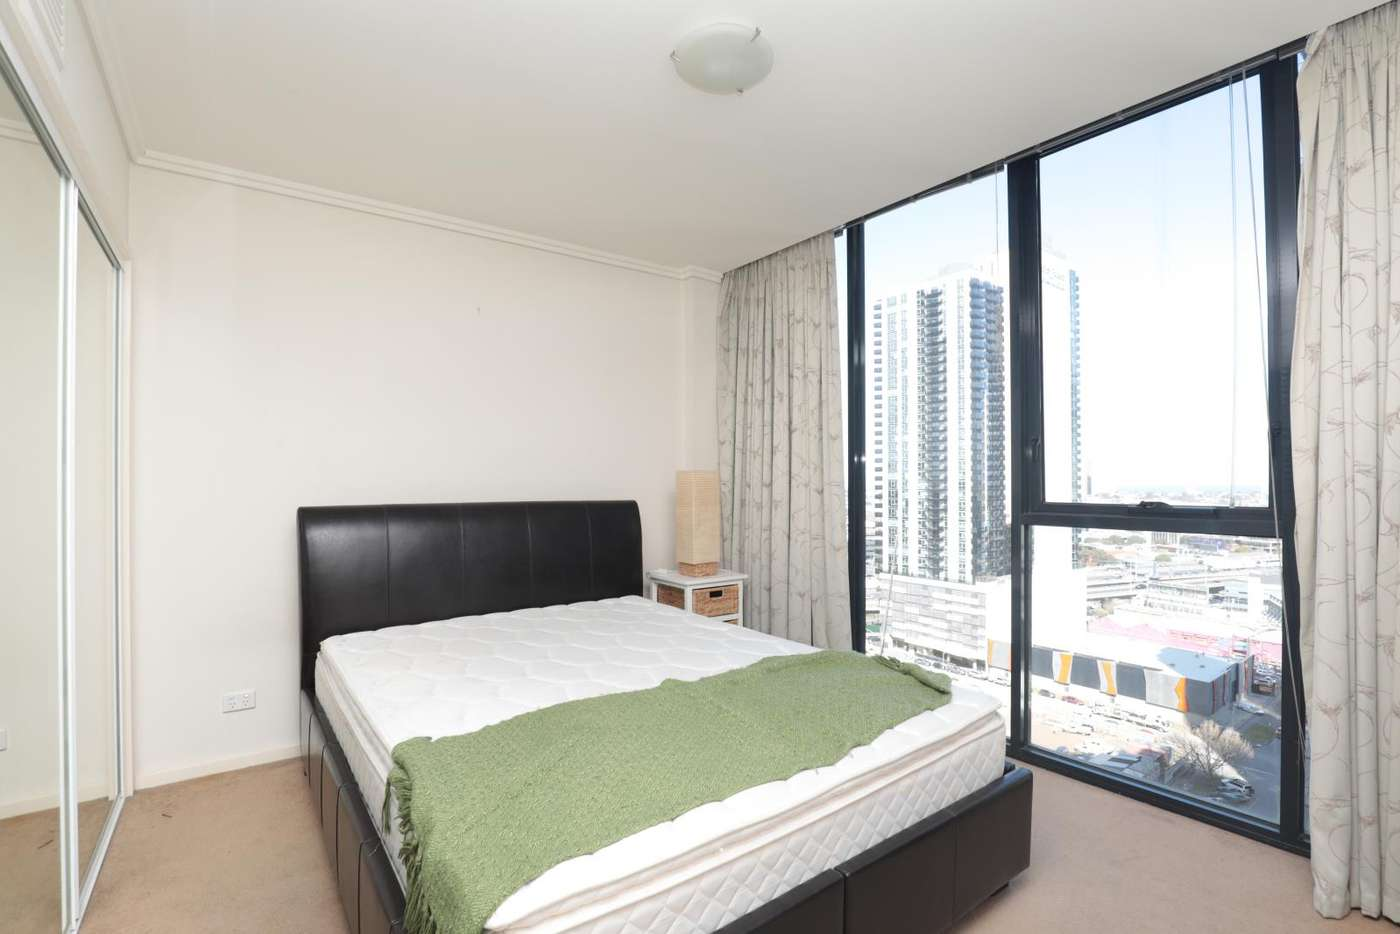 Seventh view of Homely apartment listing, 177/88 Kavanagh Street, Southbank VIC 3006